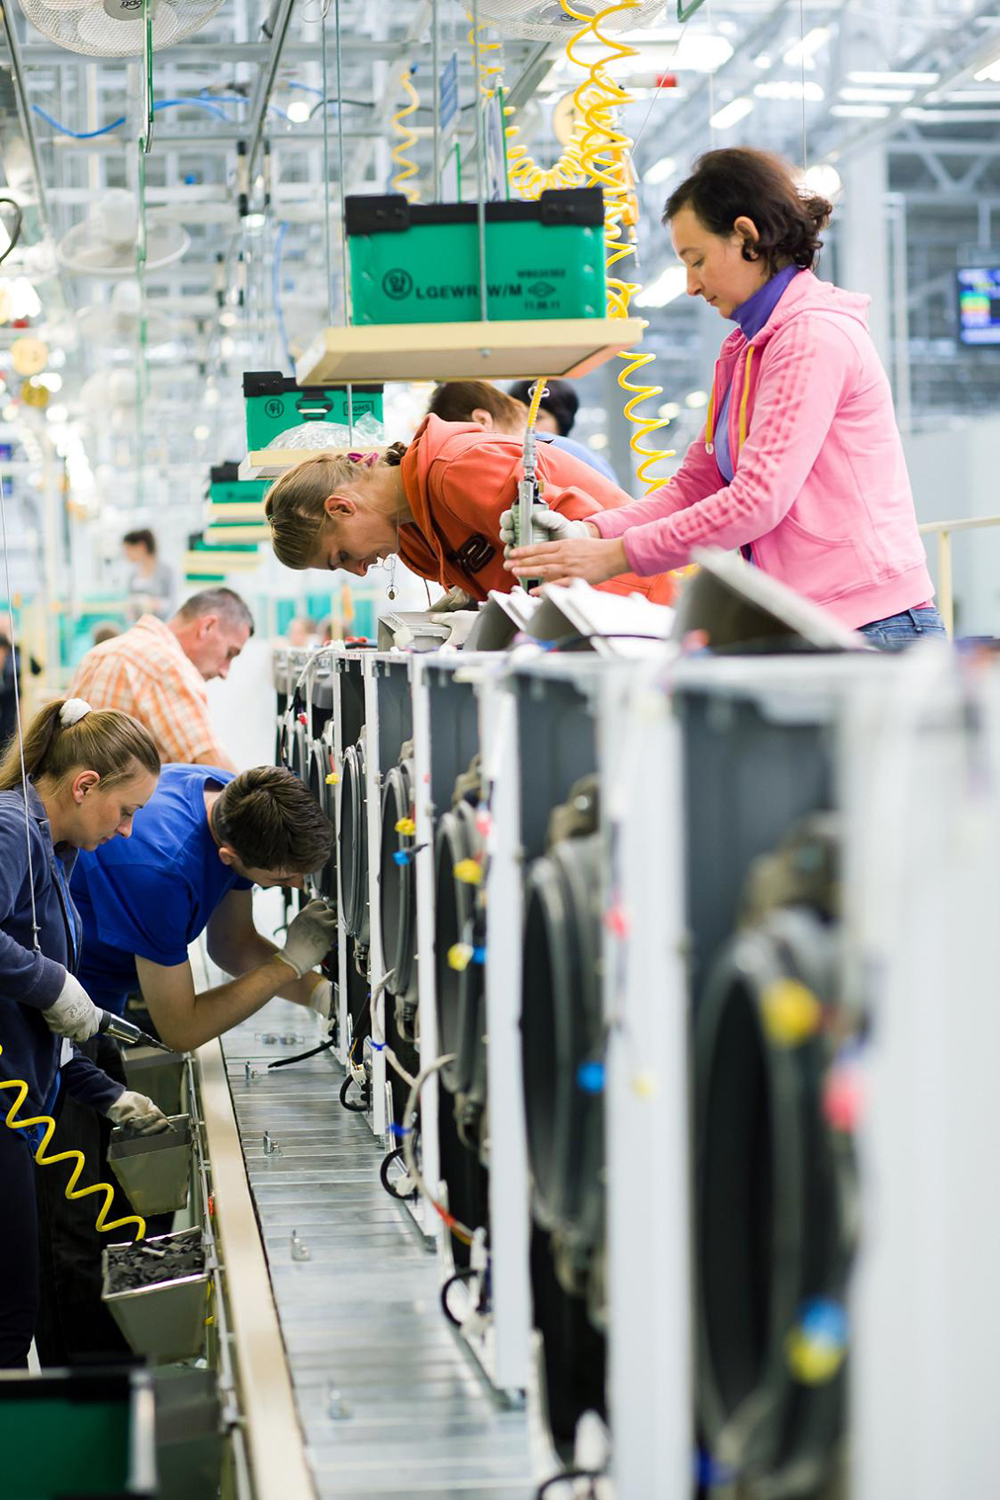 Many factory staff members assemble washing machines at an appliance manufacturing plant in Poland